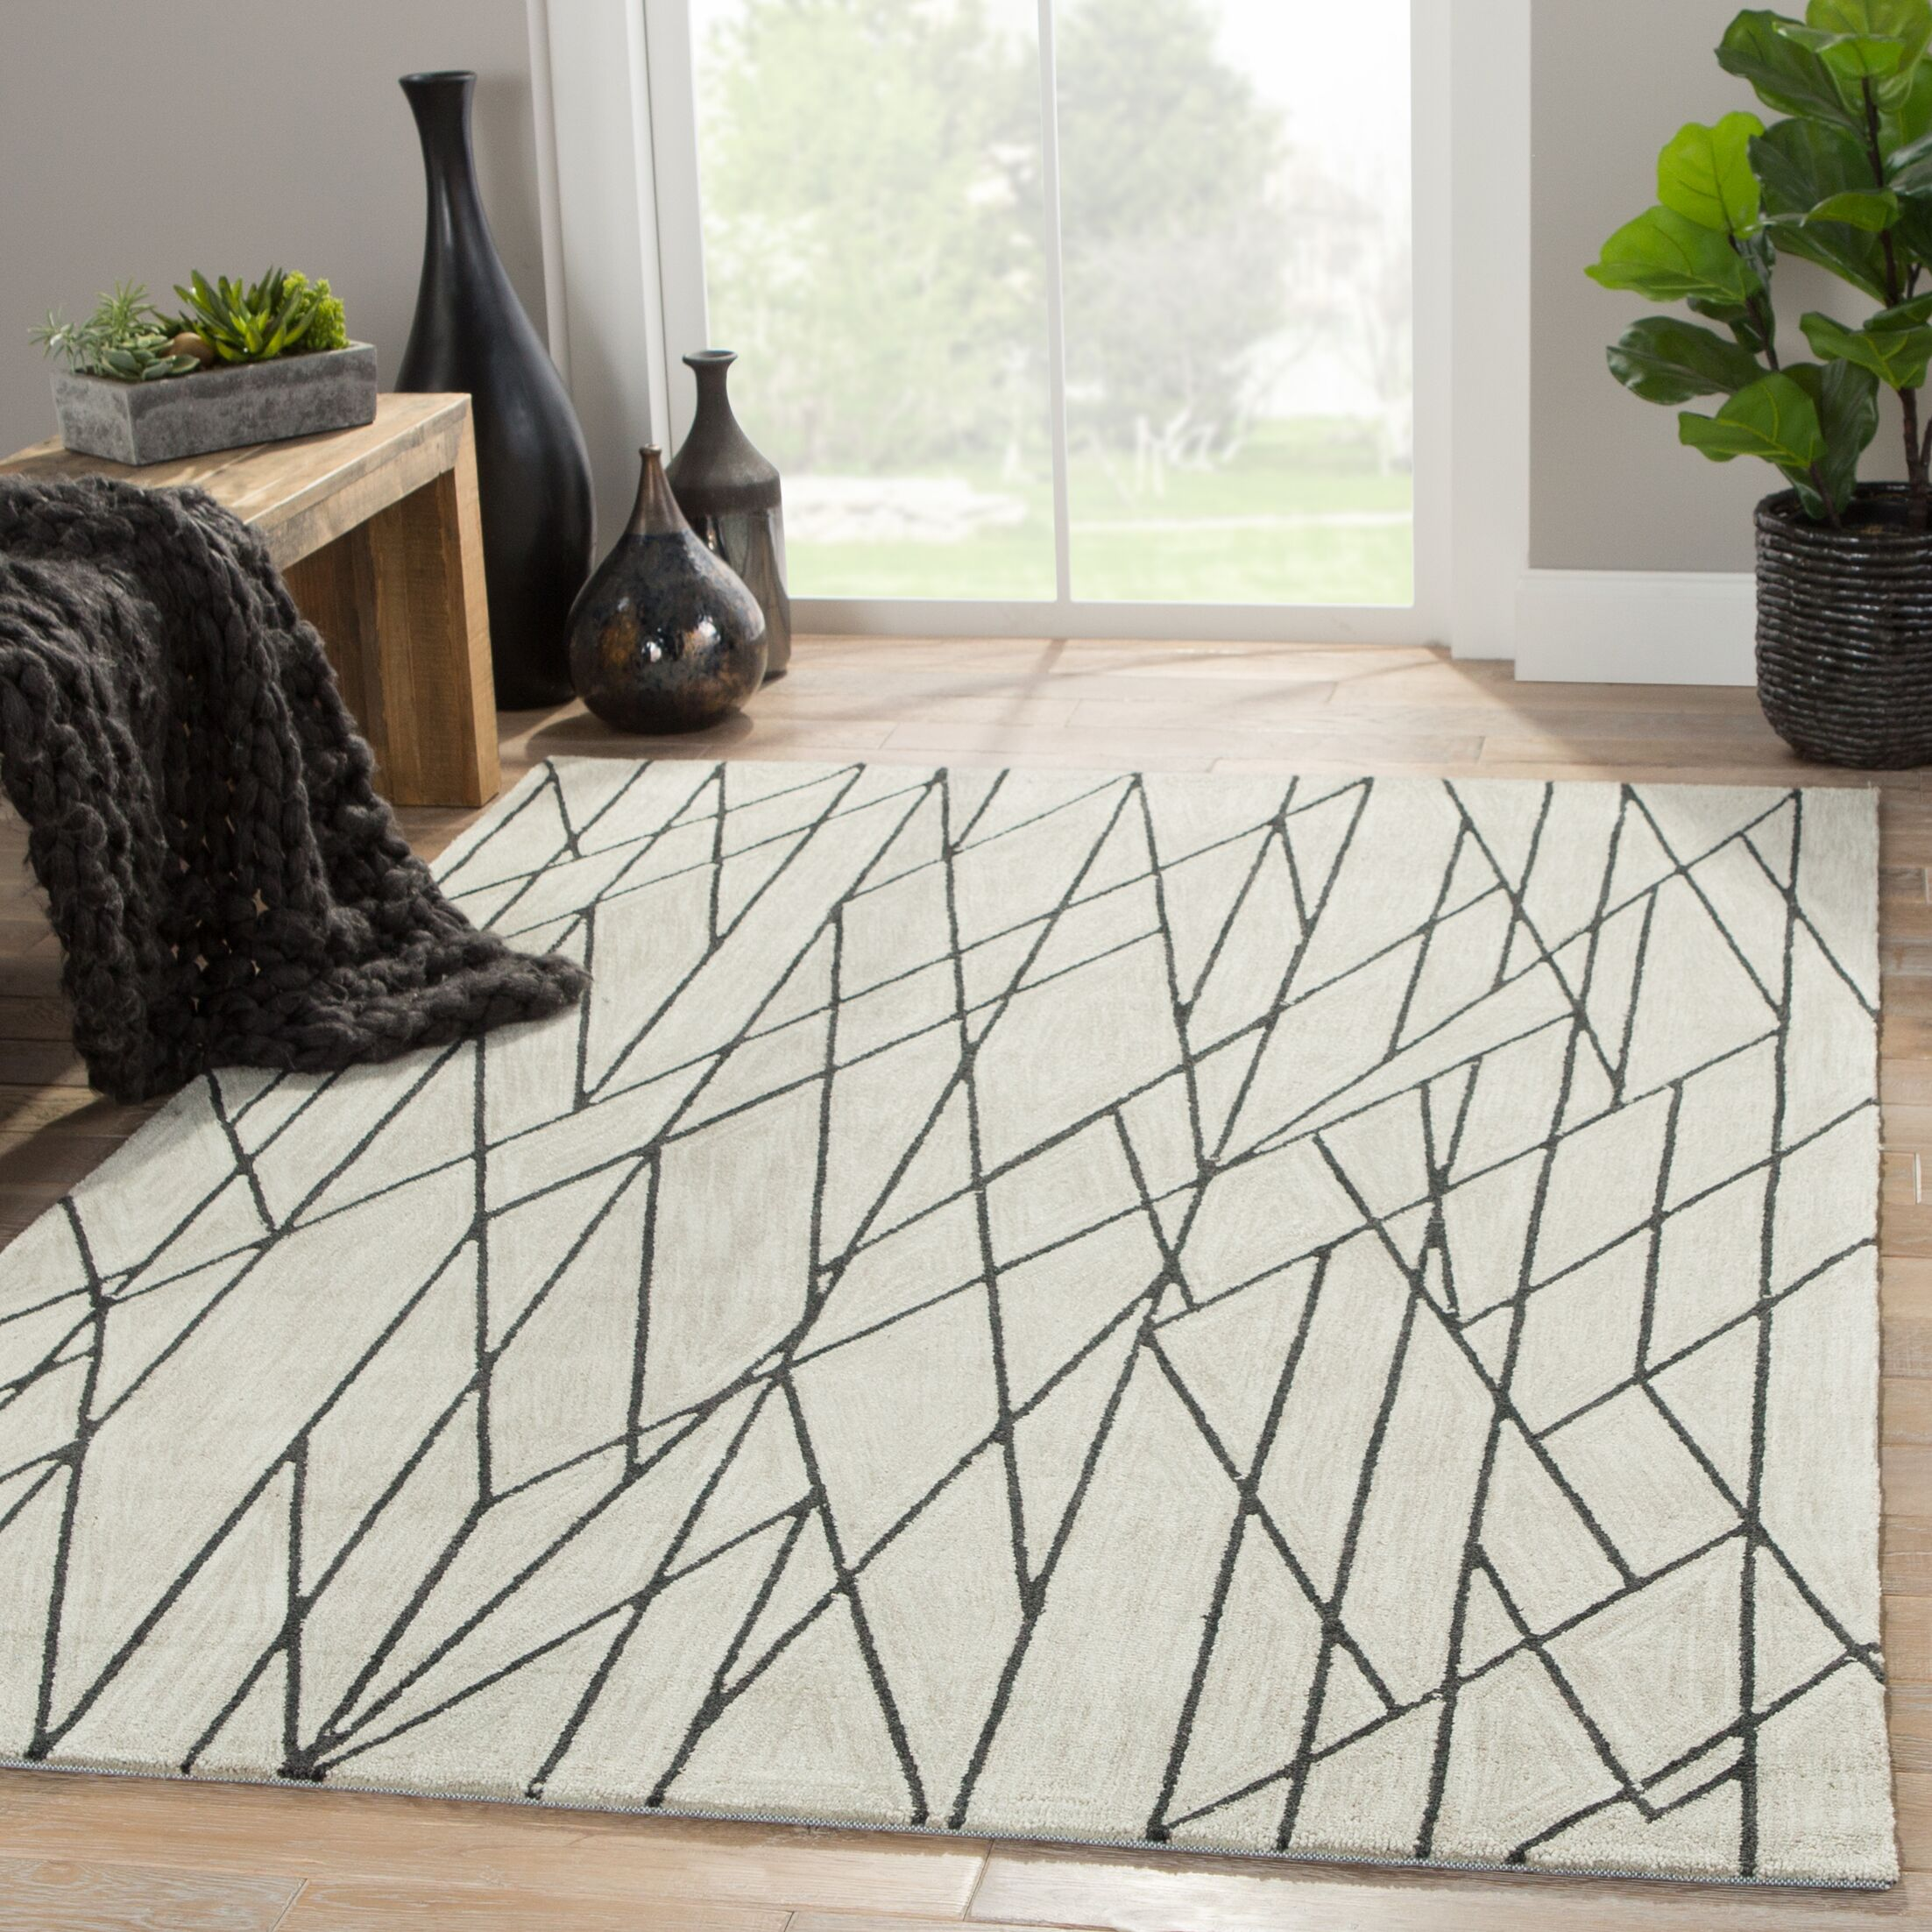 Hellman Hand-Tufted Taupe/Black Area Rug Rug Size: Rectangle 7'6